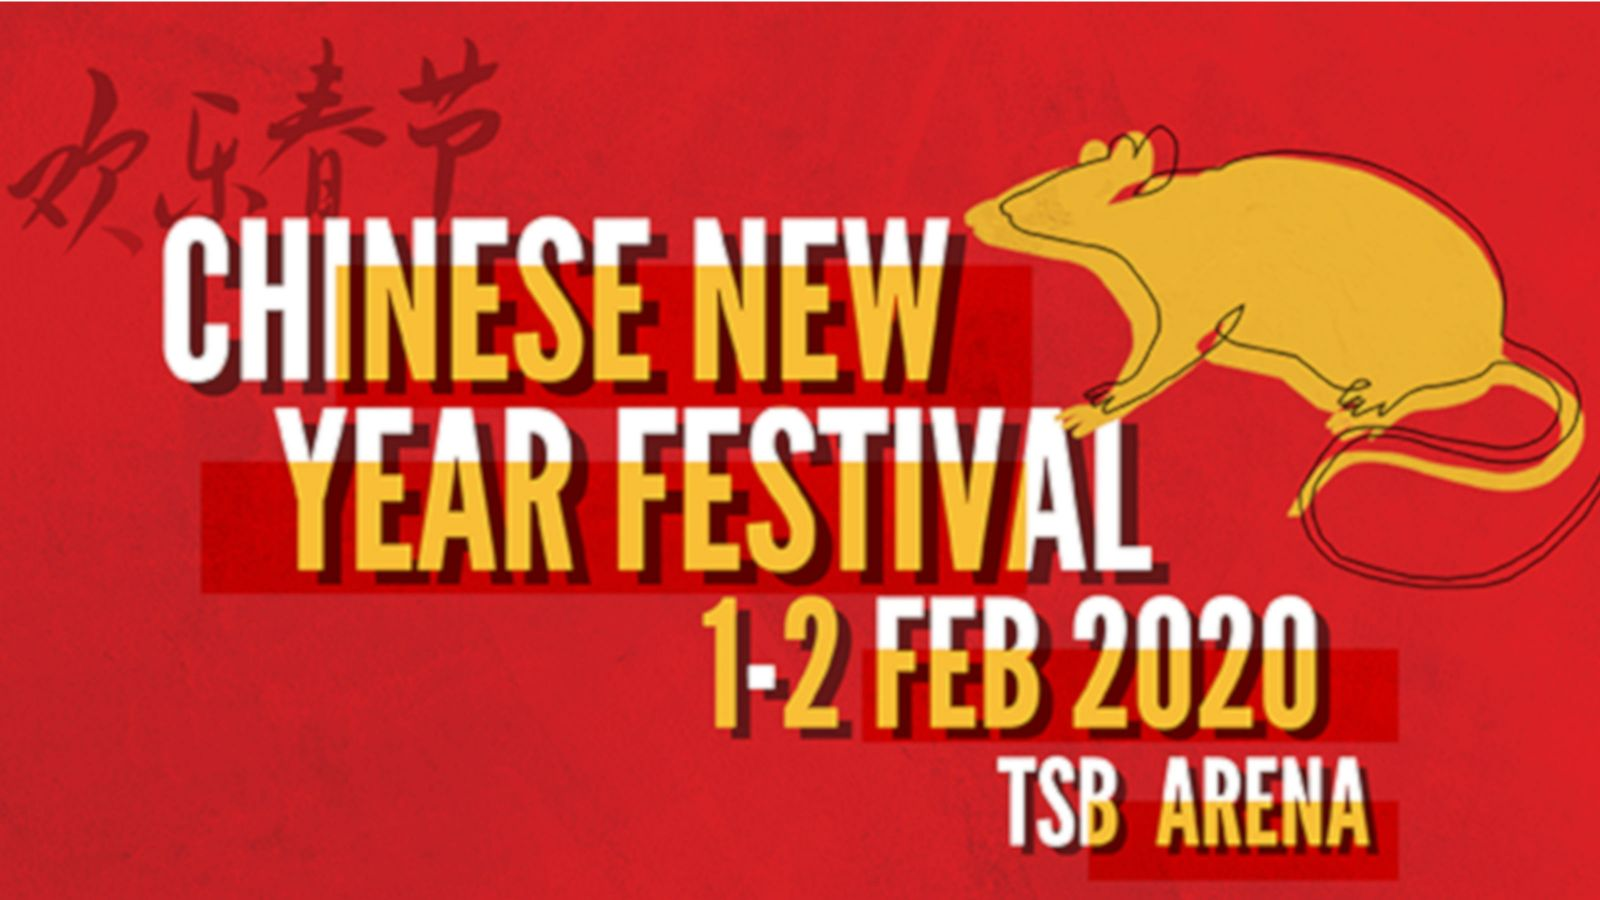 Promotional poster for Chinese New Year.